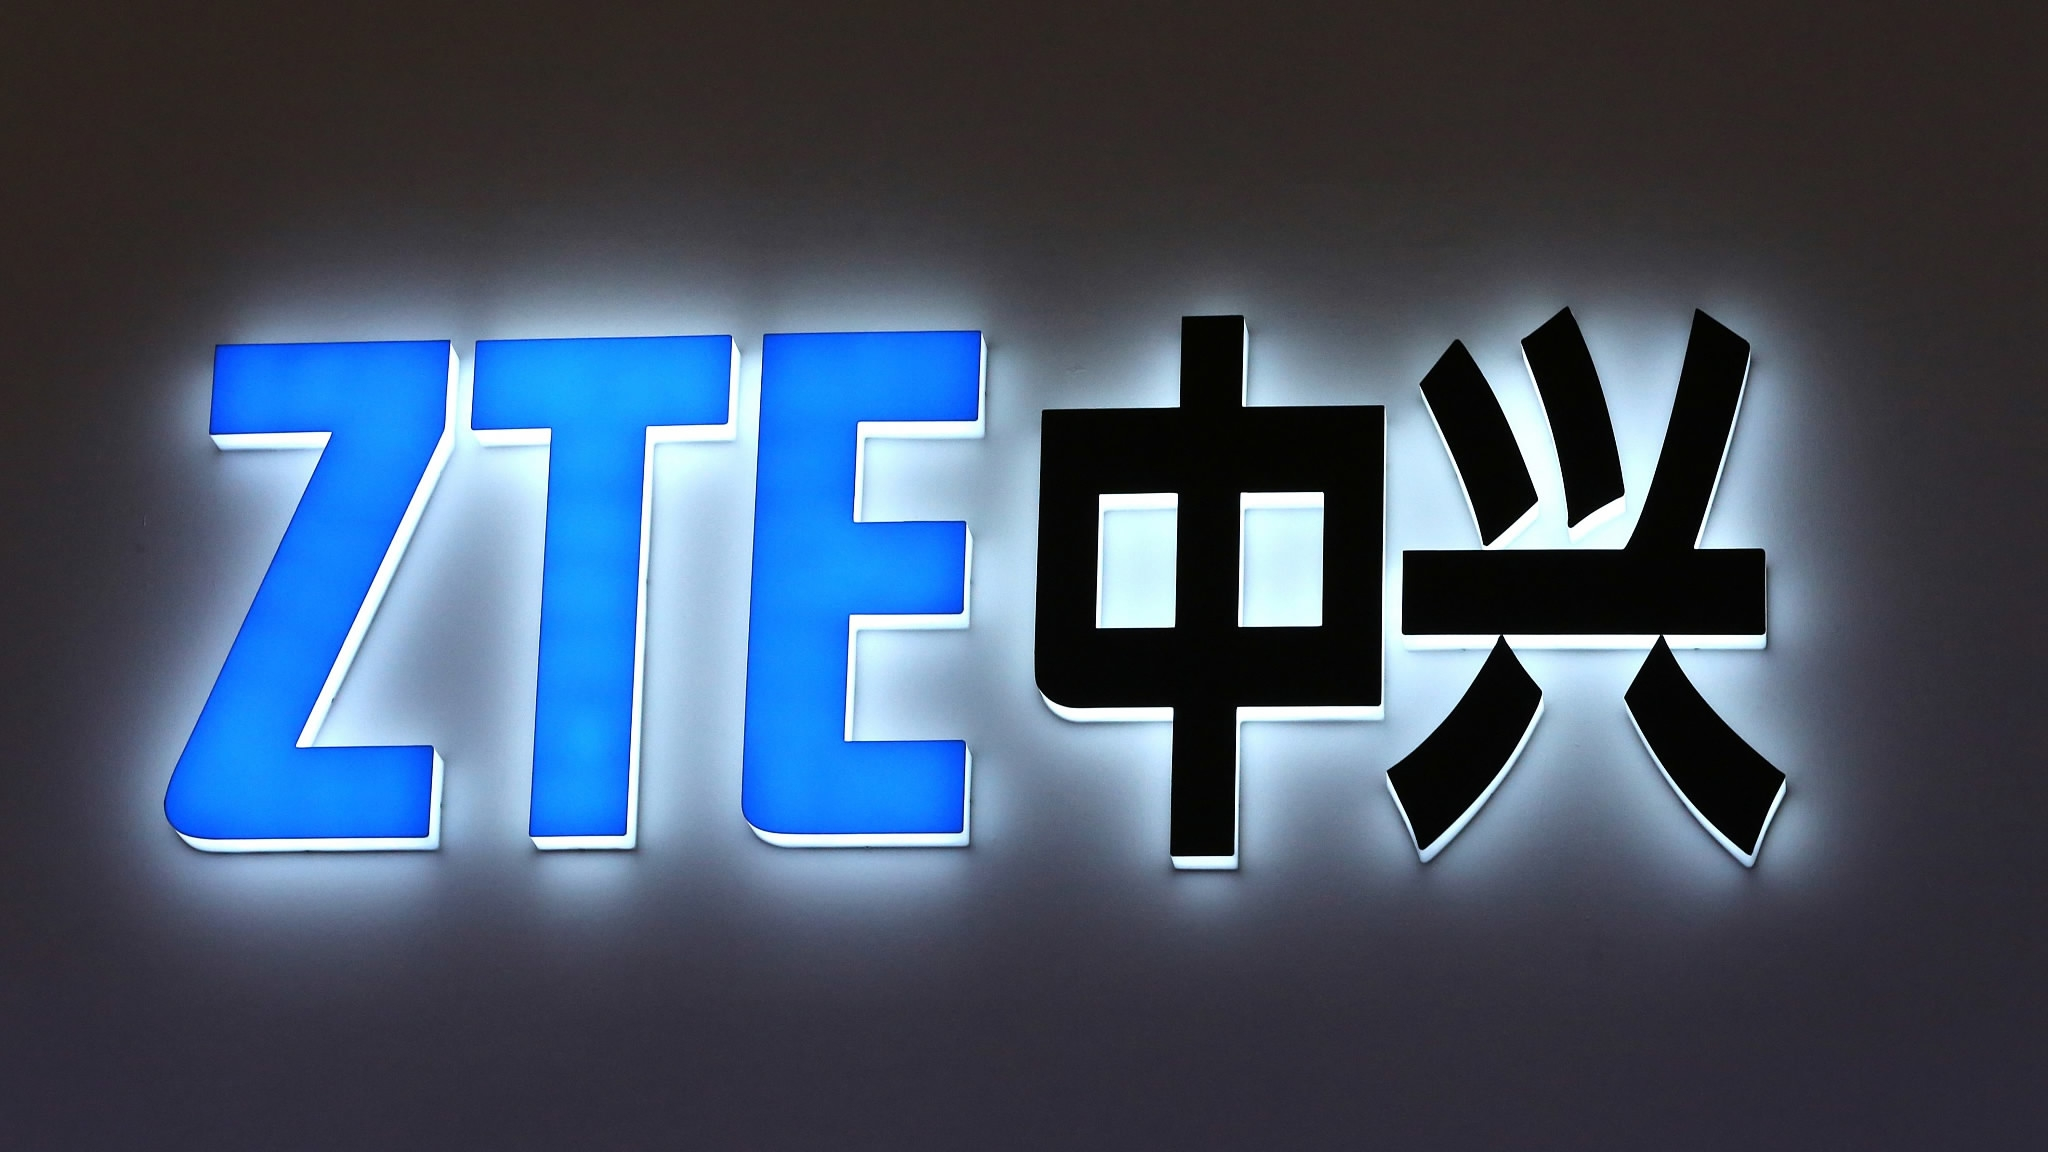 What can Chinese tech companies learn from ZTE's case?